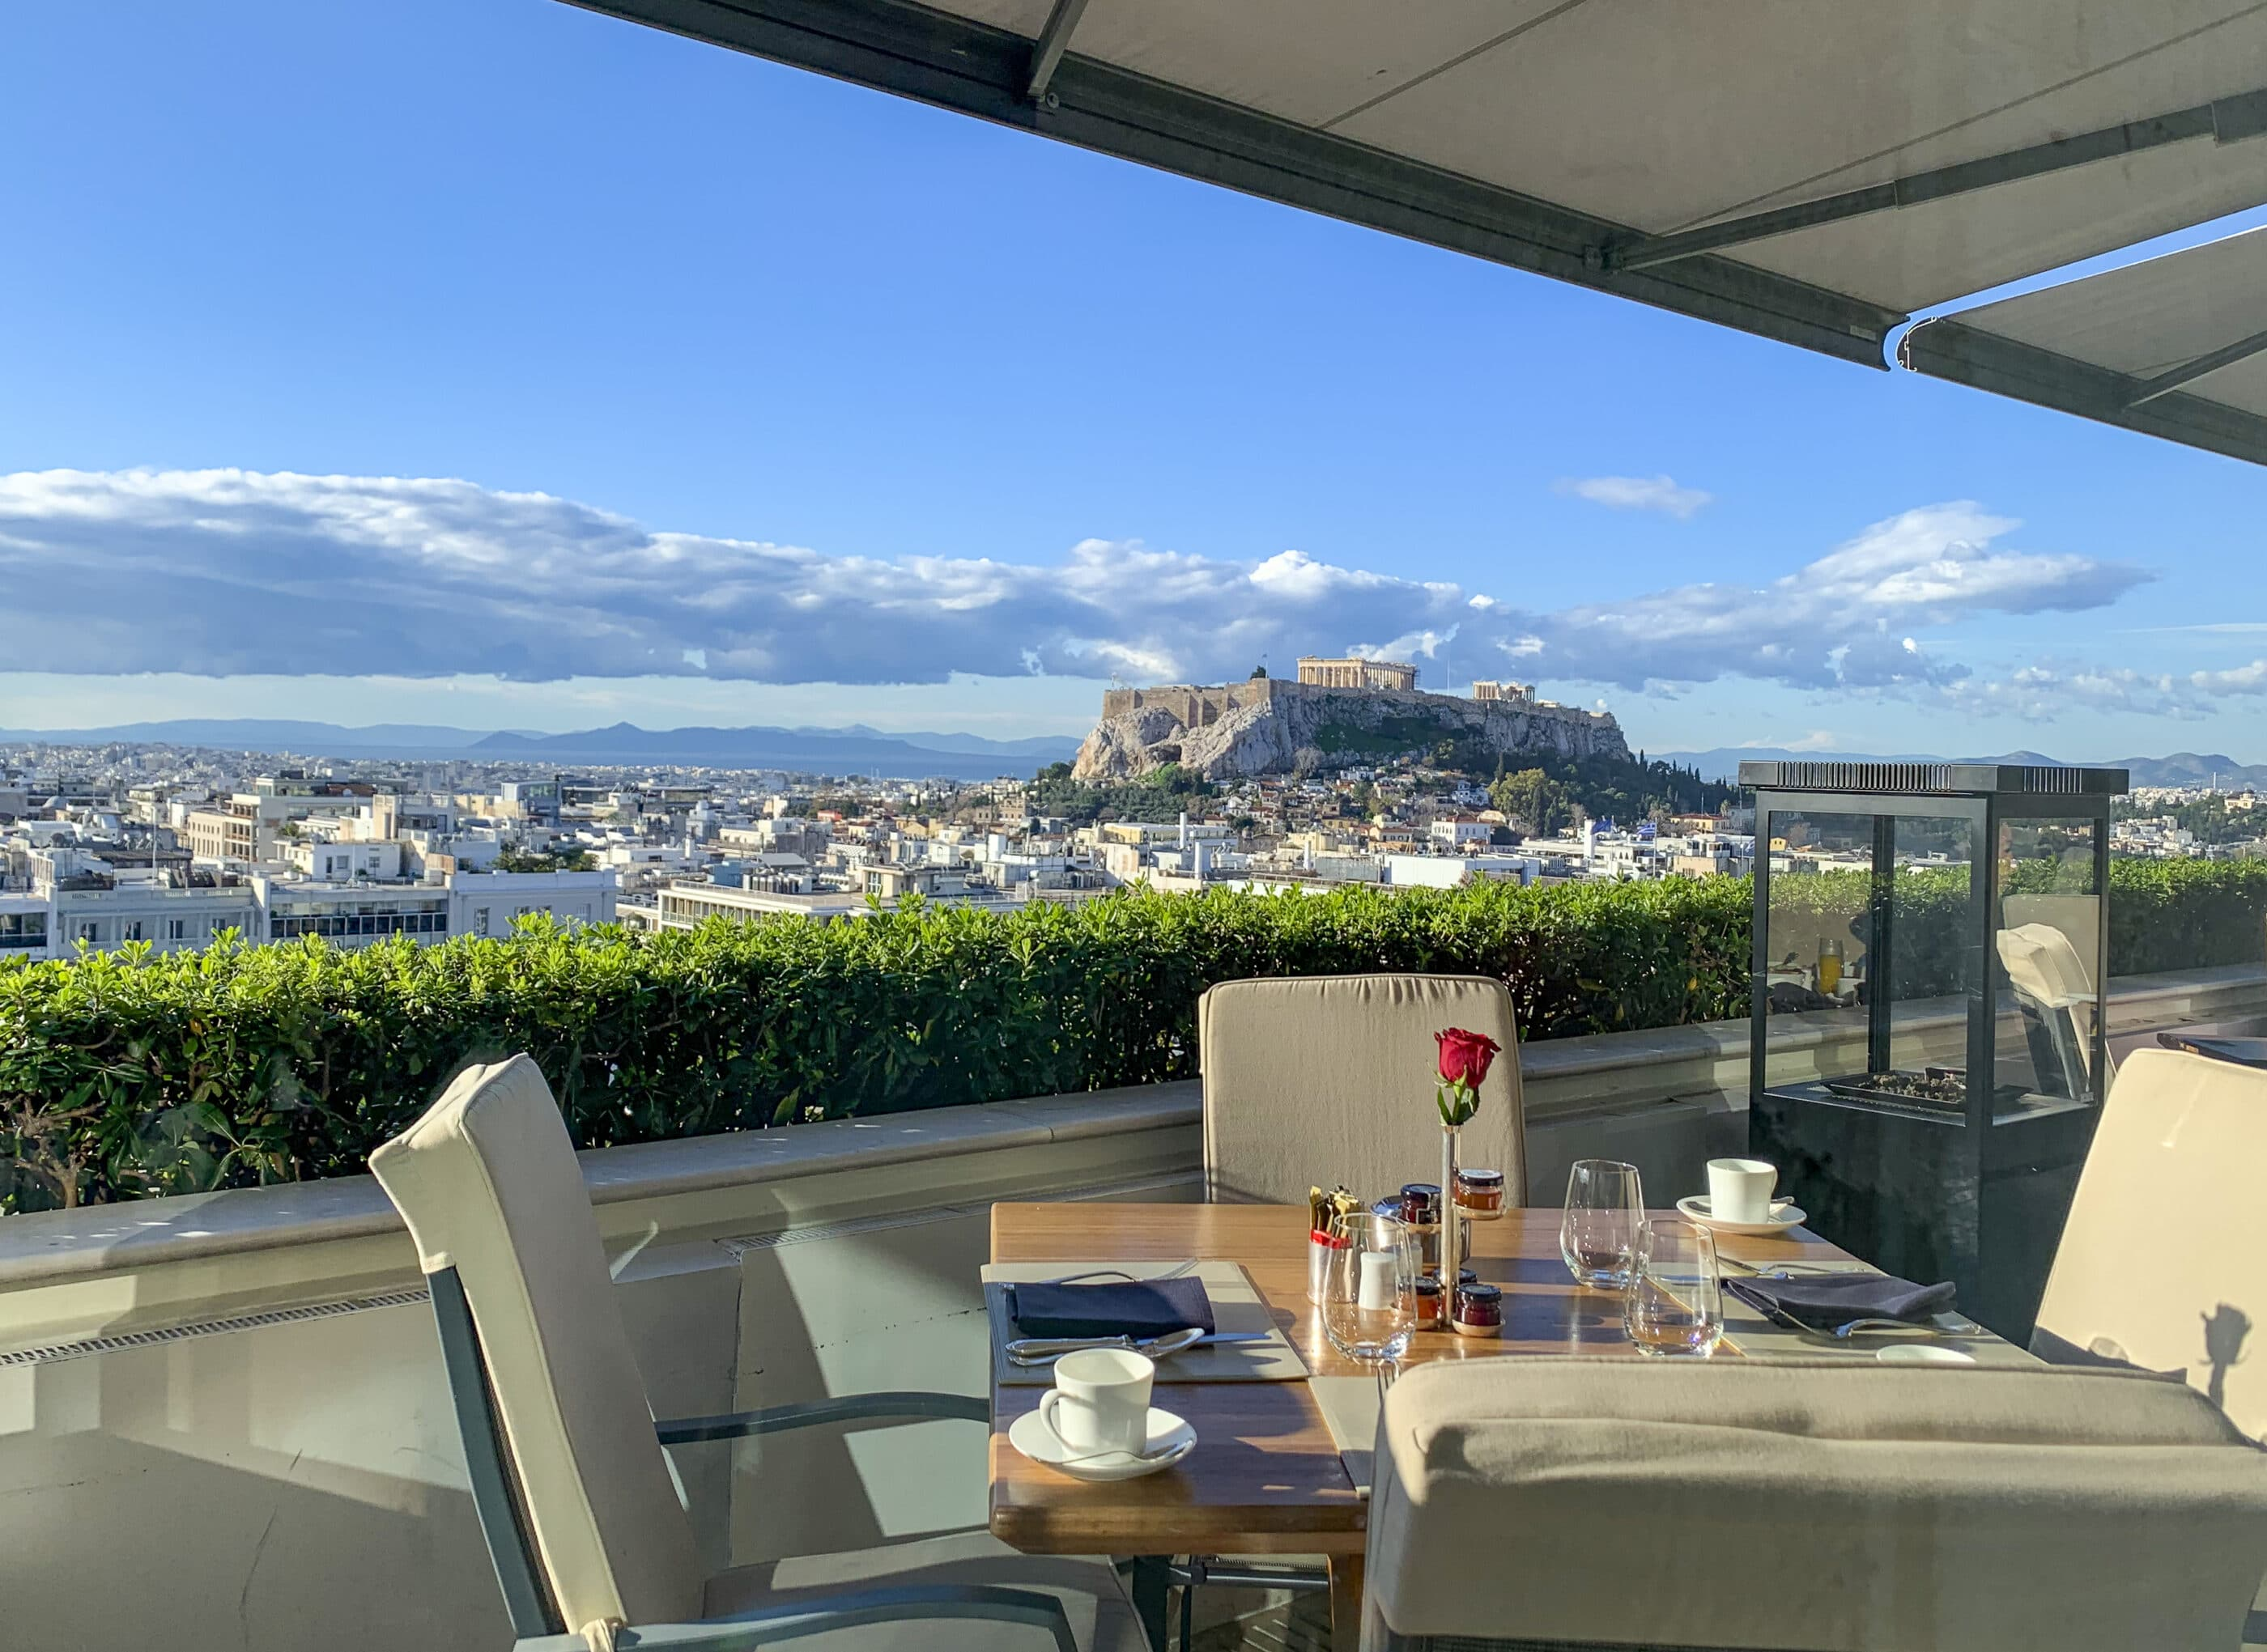 View of the Acropolis and Parthenon from the rooftop restaurant at Hotel Grande Bretagne in Athens, Greece.